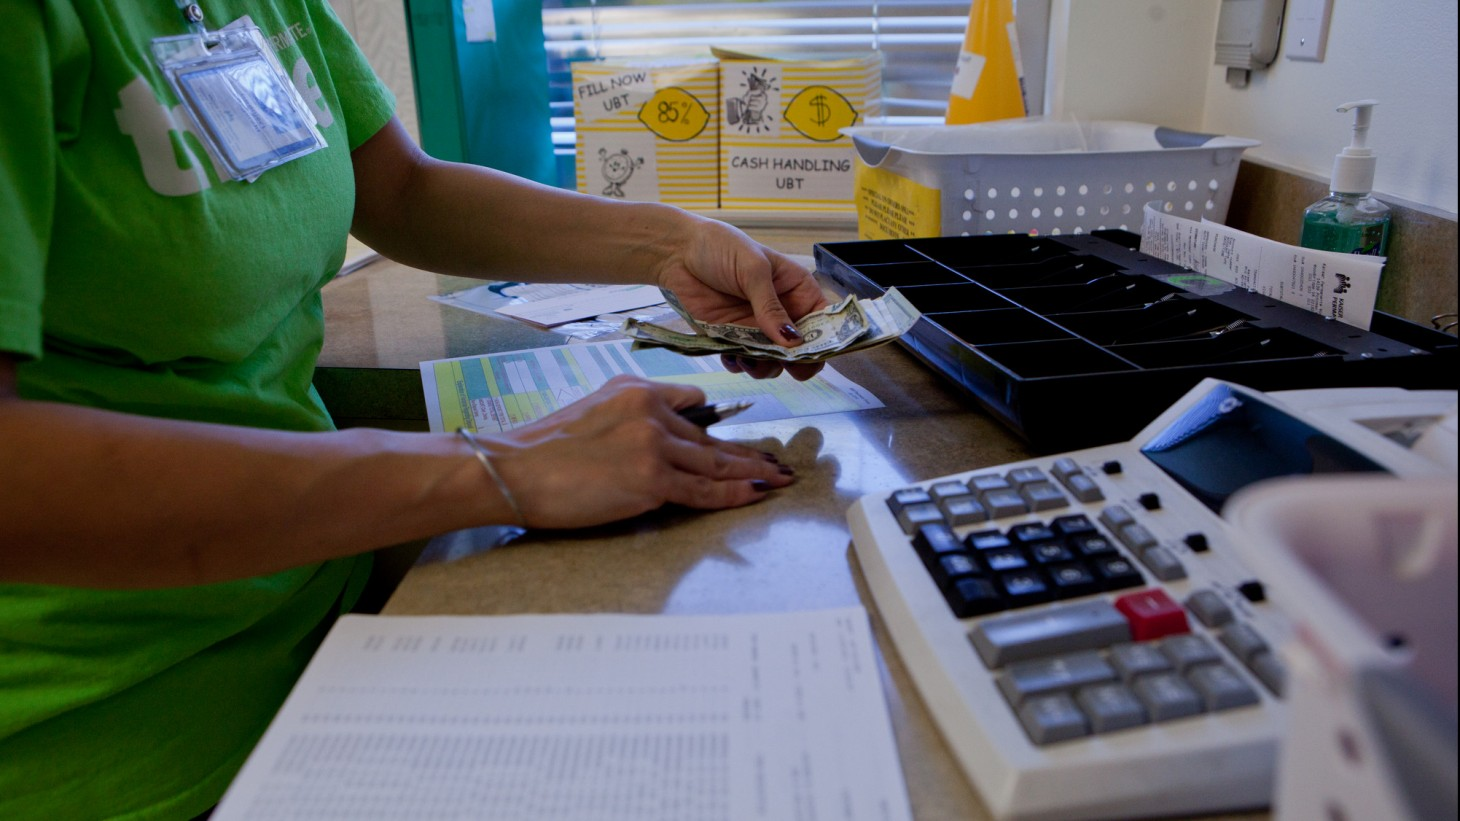 worker counting cash at a desk with a large calculator on it